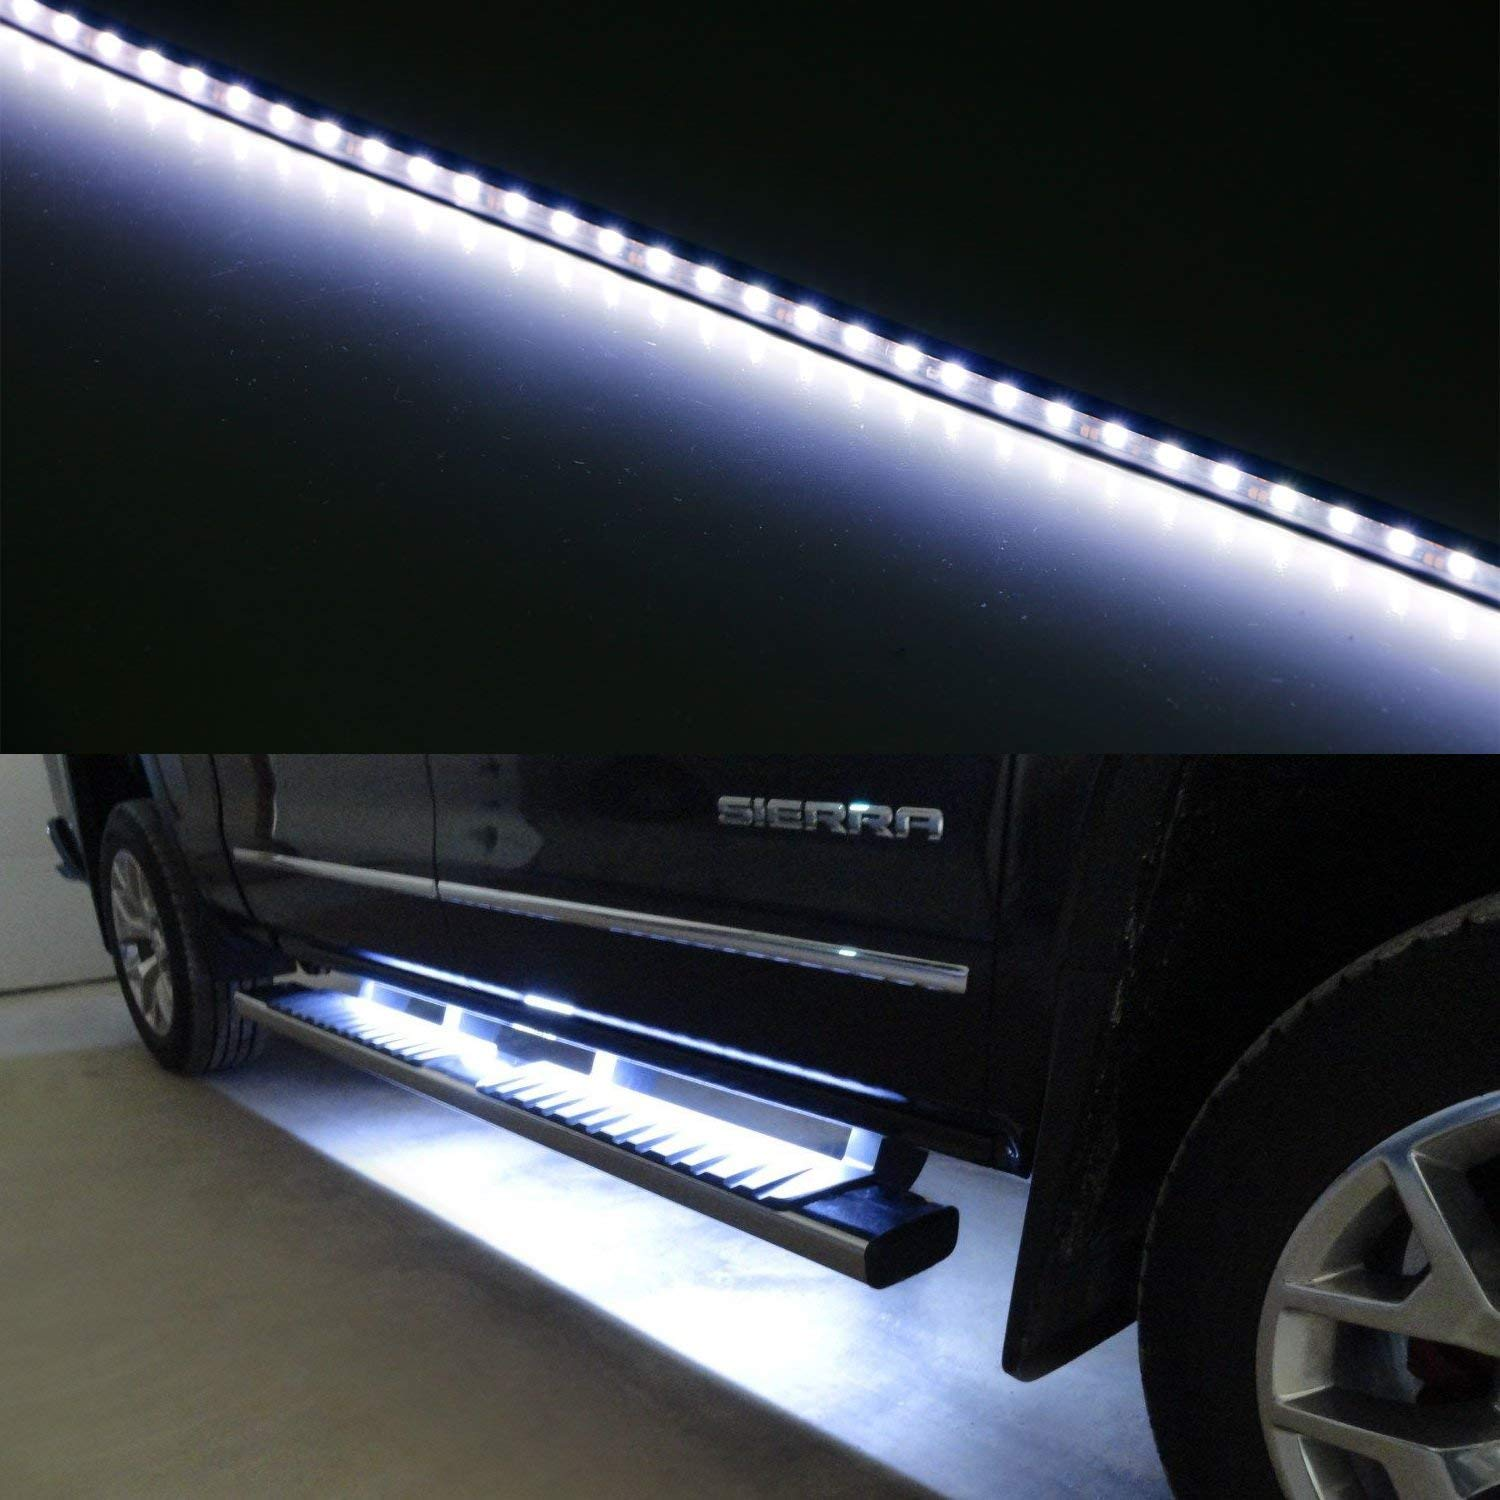 40 63-SMD Flexible LED Running Board//Side Step Lighting Kit For Ford GMC Chevy Dodge Toyota Nissan Honda Truck SUV iJDMTOY Ultra Blue 2